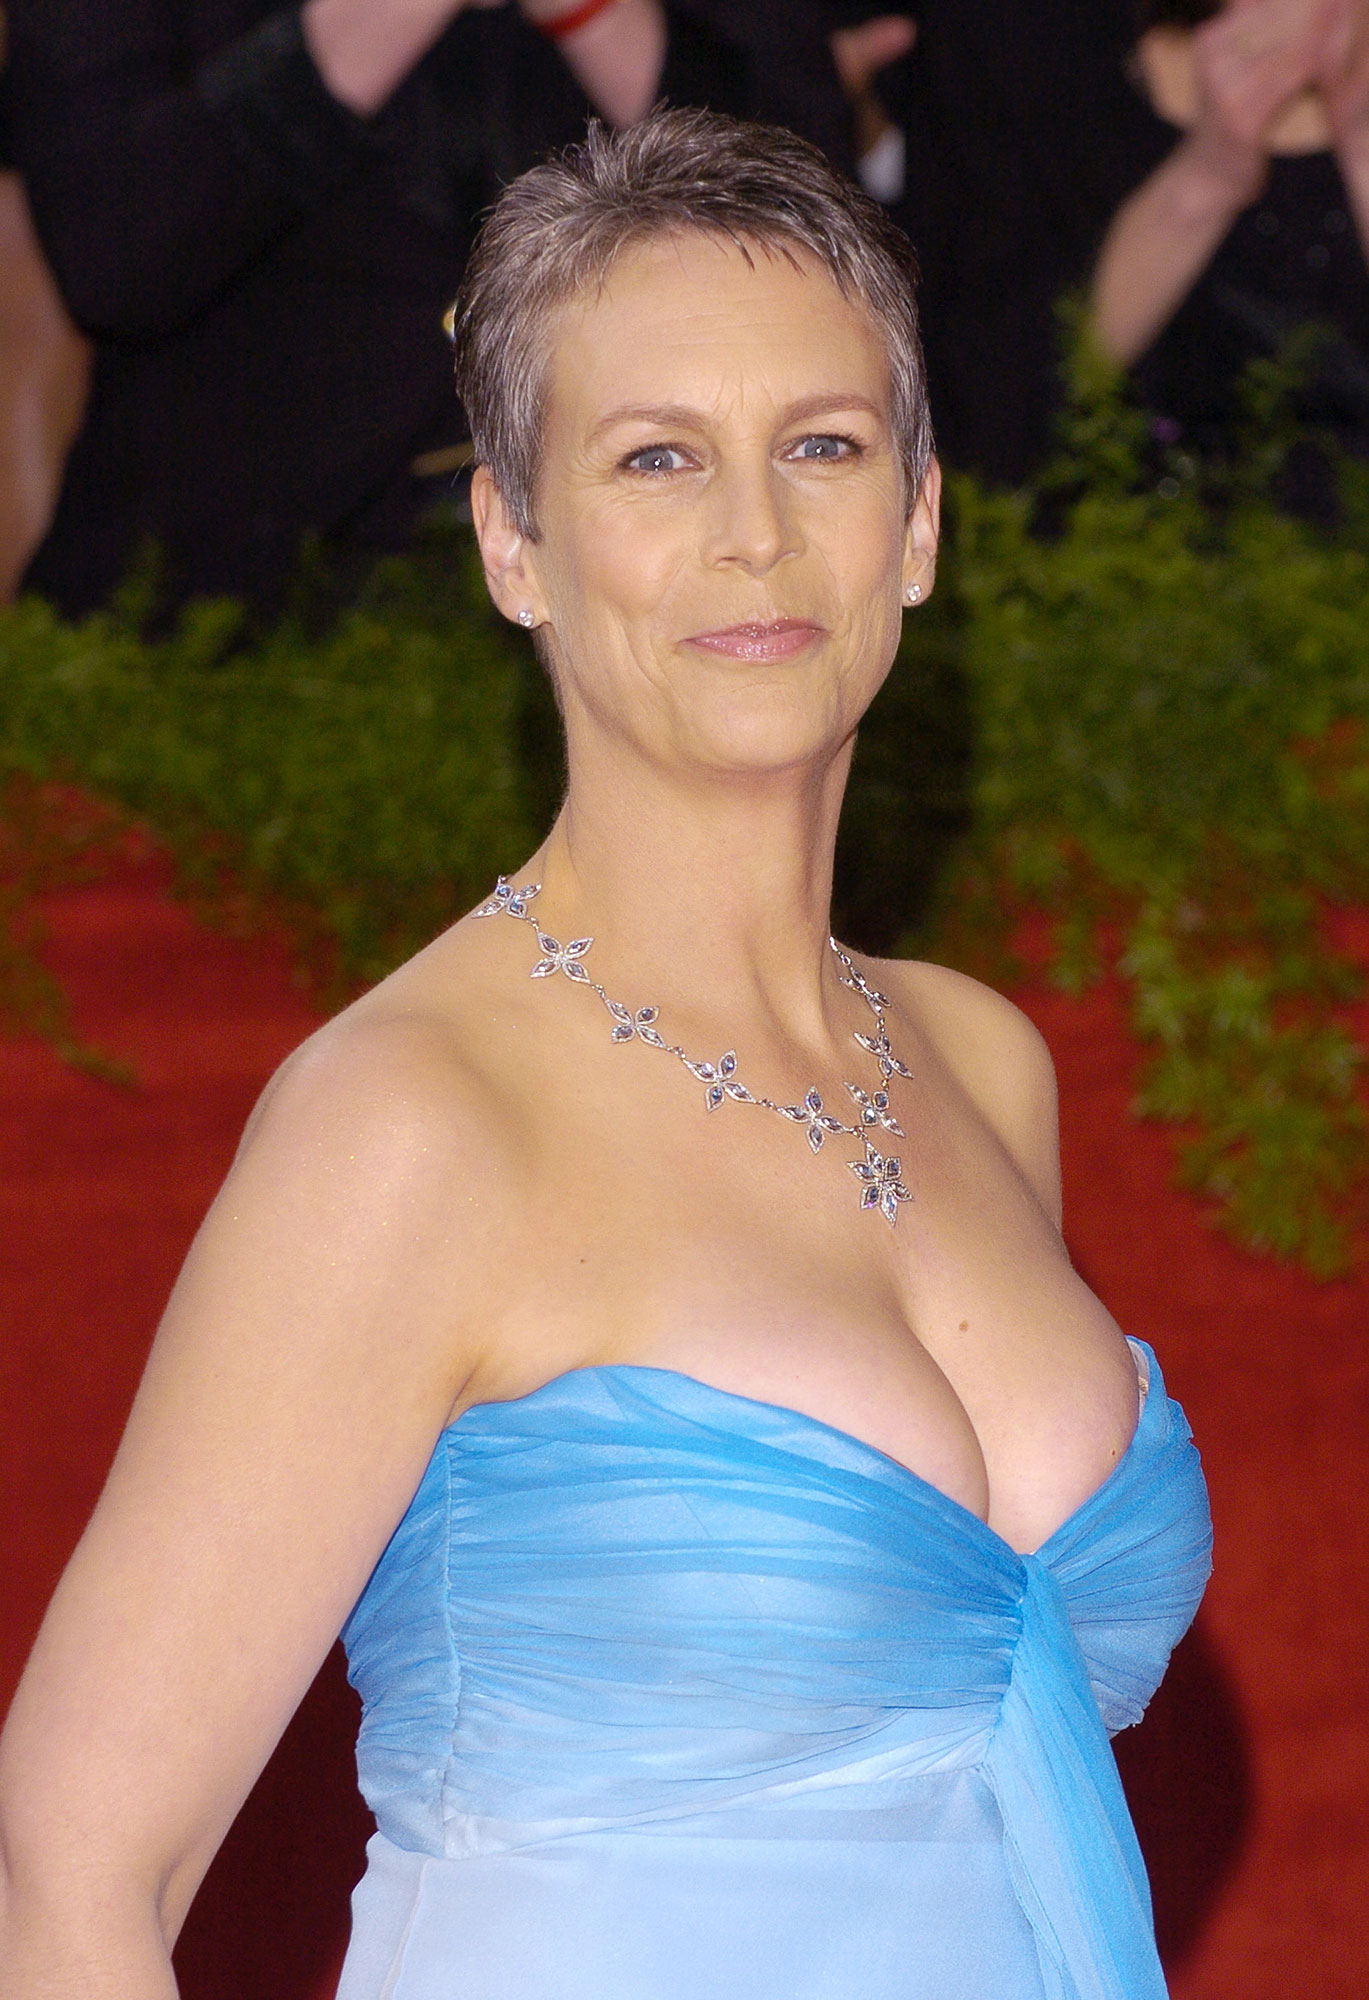 Jamie Lee Curtis - Stars Who Have Never Won Oscars - The scream queen may have worldwide recognition thanks to her long-running Halloween franchise, but she doesn't have any Oscar nominations to her name.